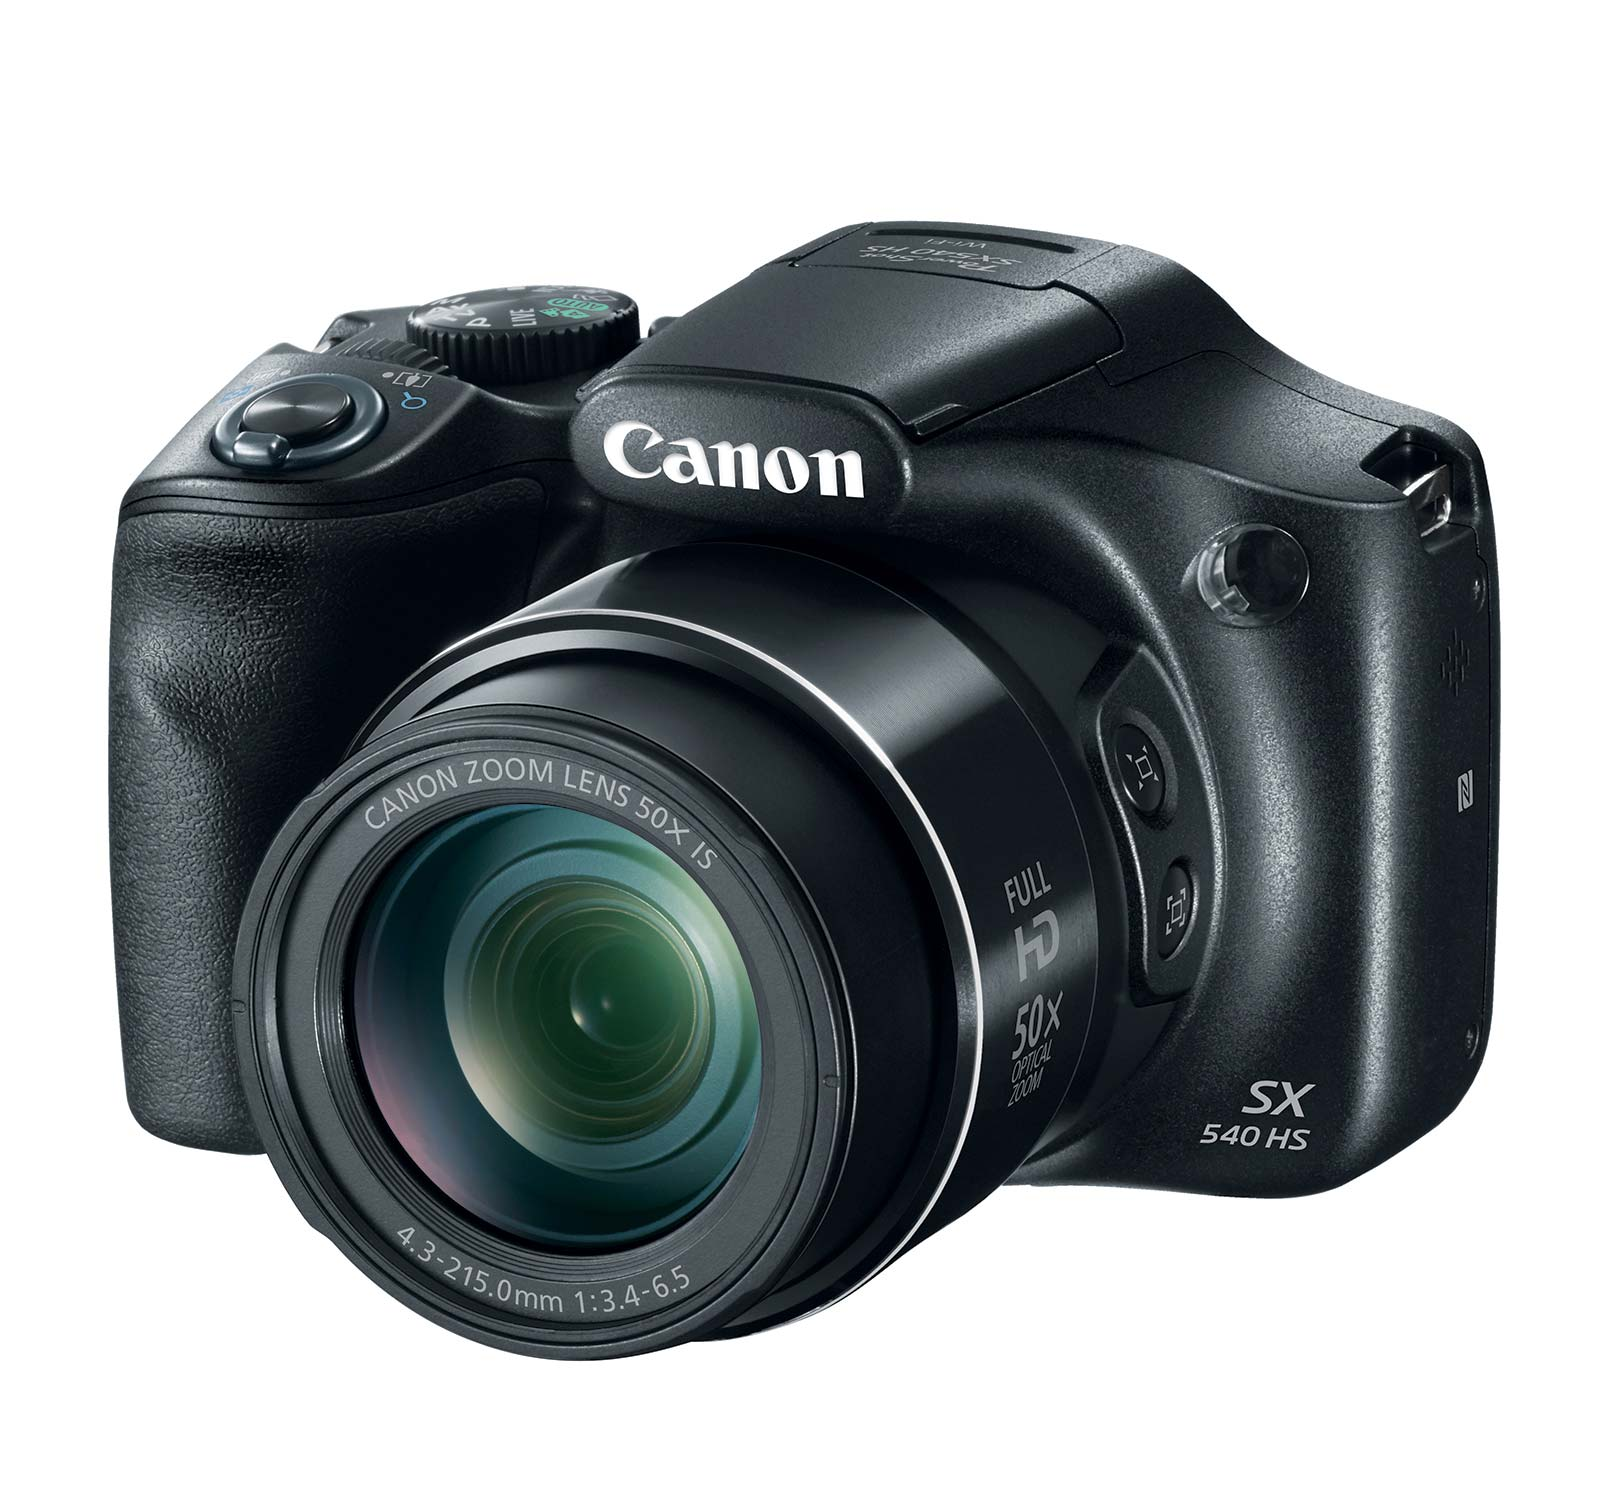 Canon Black PowerShot SX540 HS Digital Camera with 20.3 Megapixels and 50x Optical Zoom